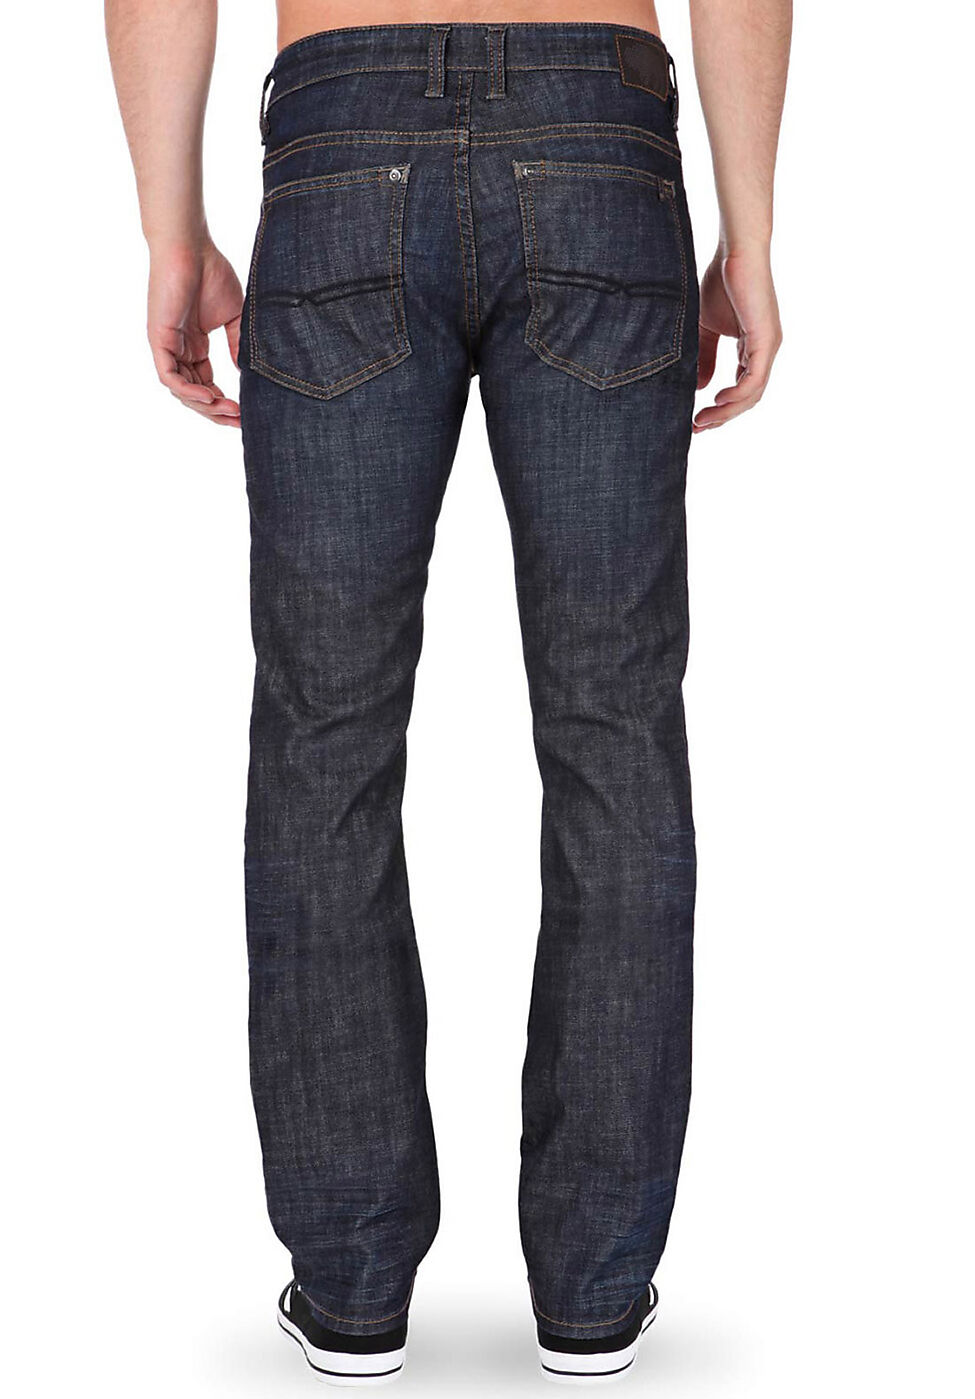 New Buffalo men's jeans SIX SLIM Size 40 X 32